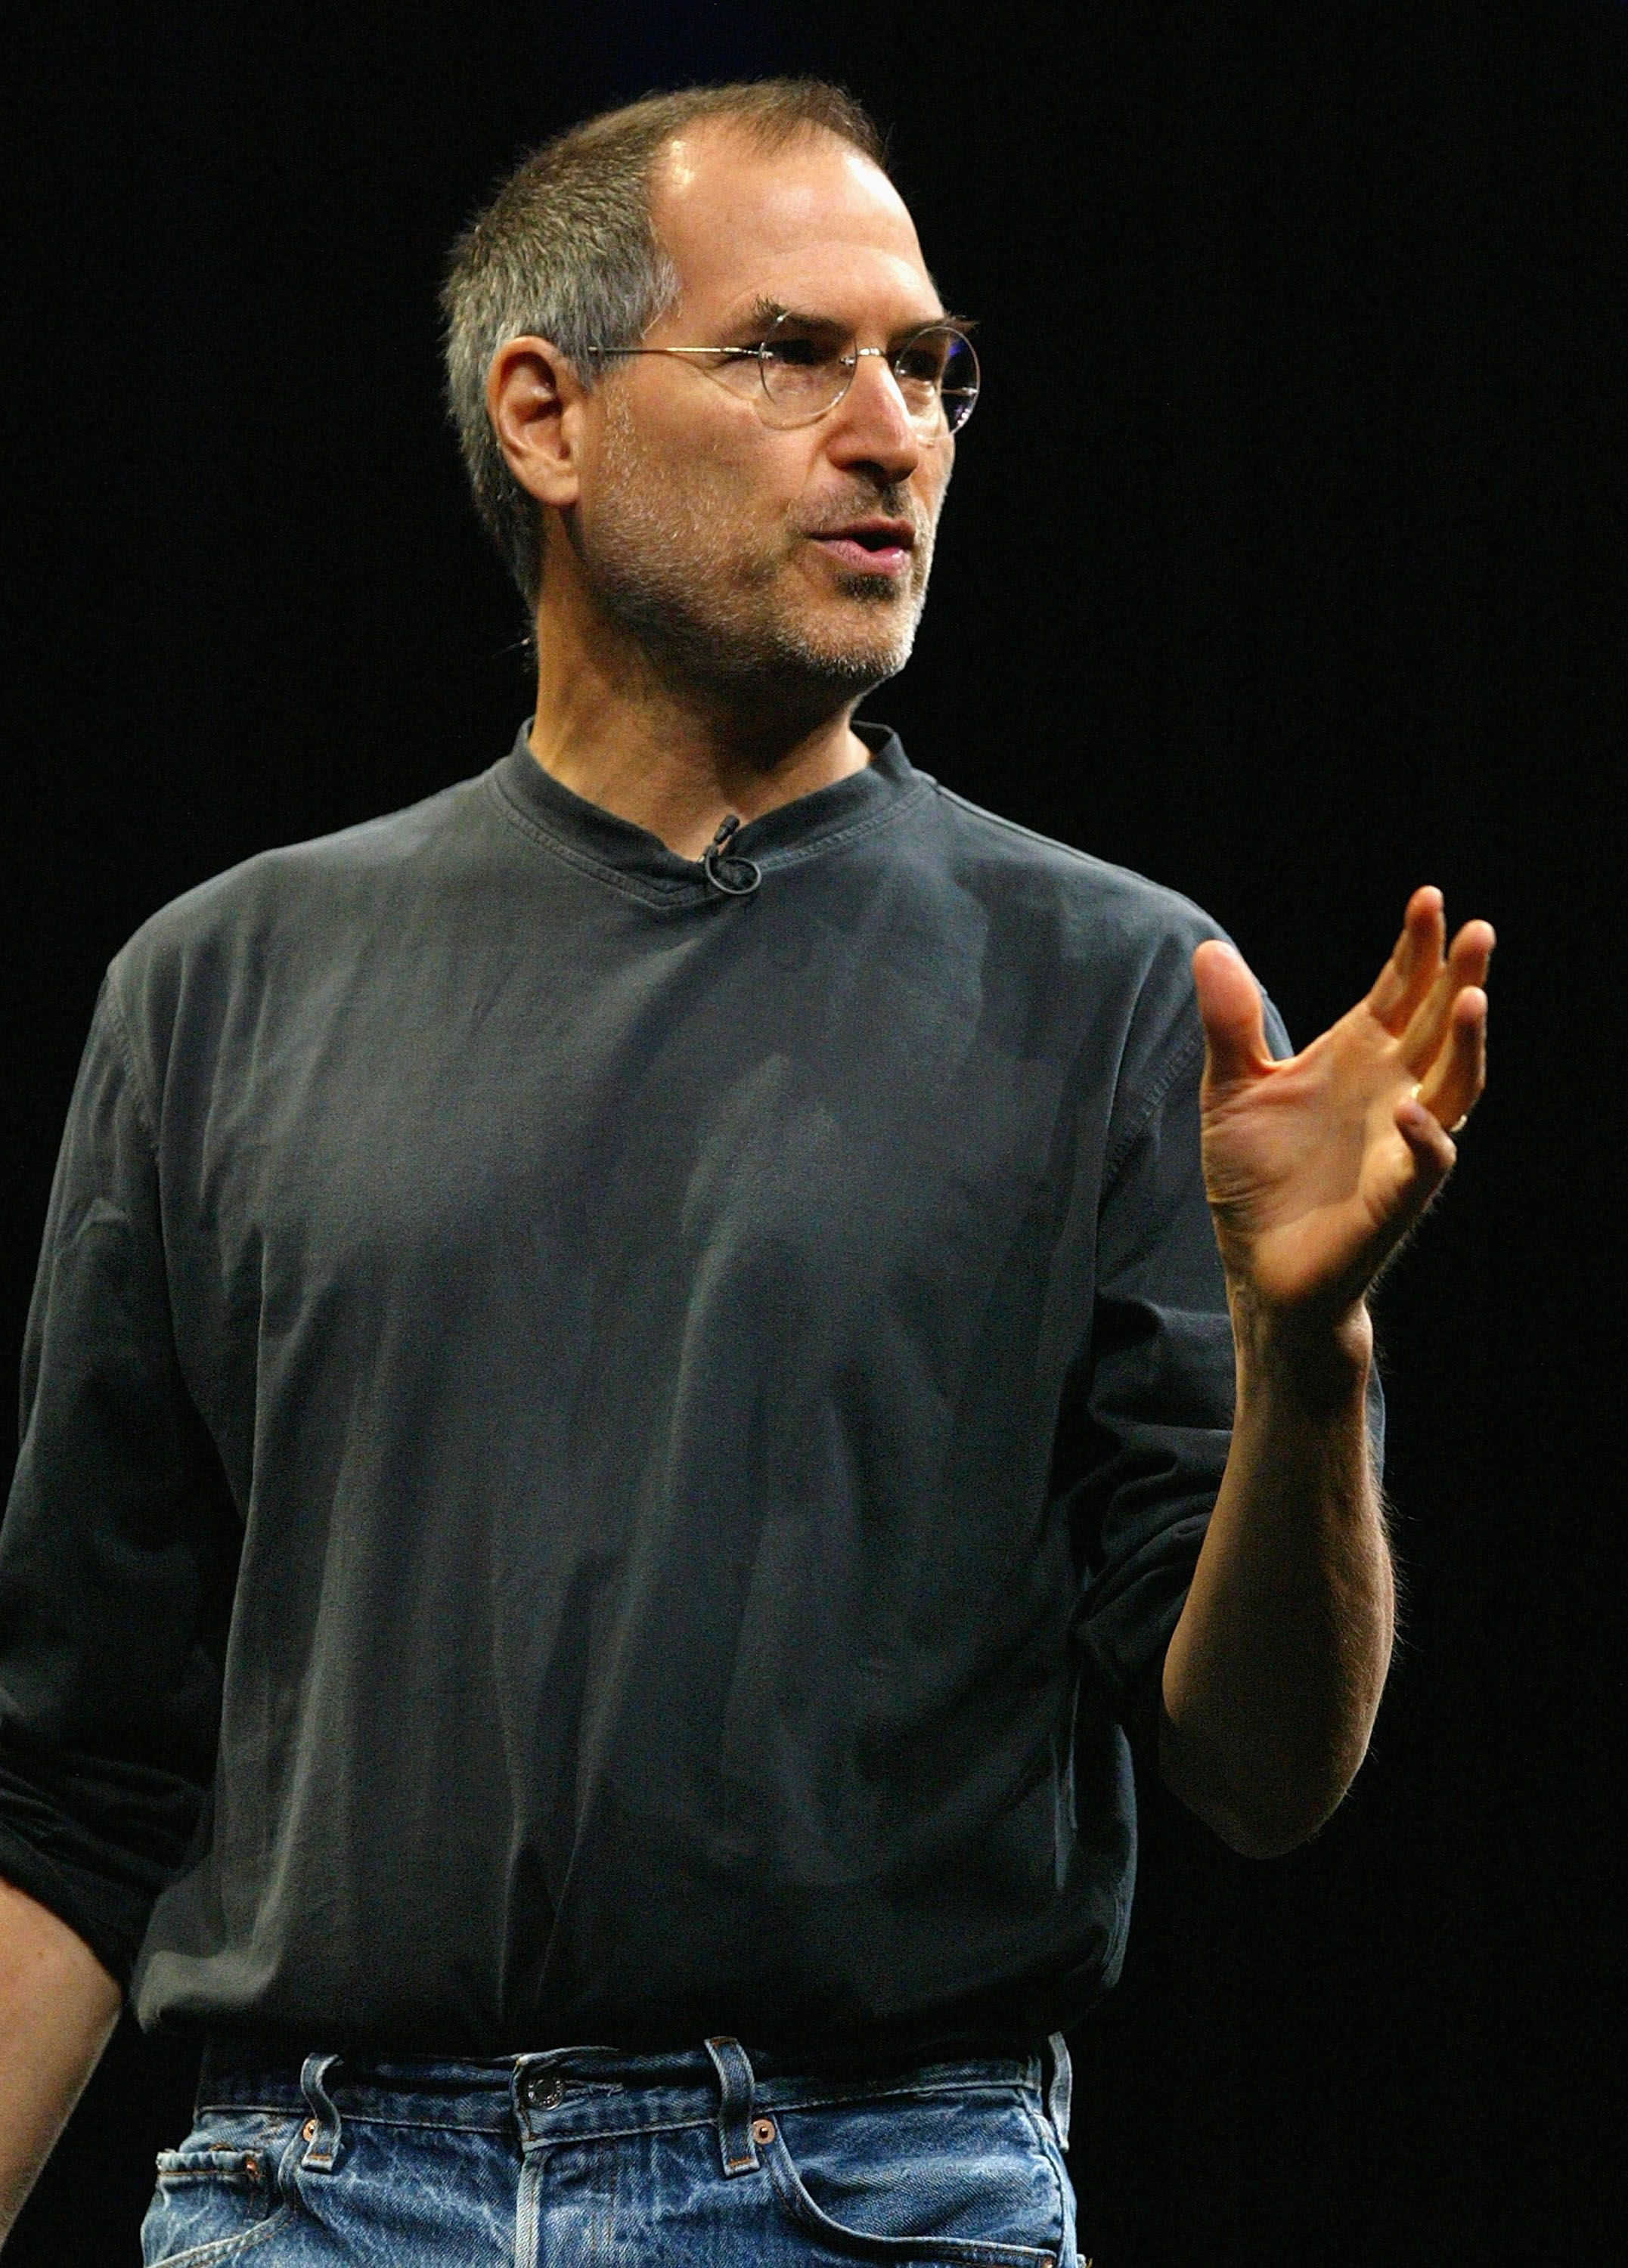 Steve Jobs at the 2004 Worldwide Developers Conference on June 28, 2004, in San Francisco, California | Photo: Justin Sullivan/Getty Images